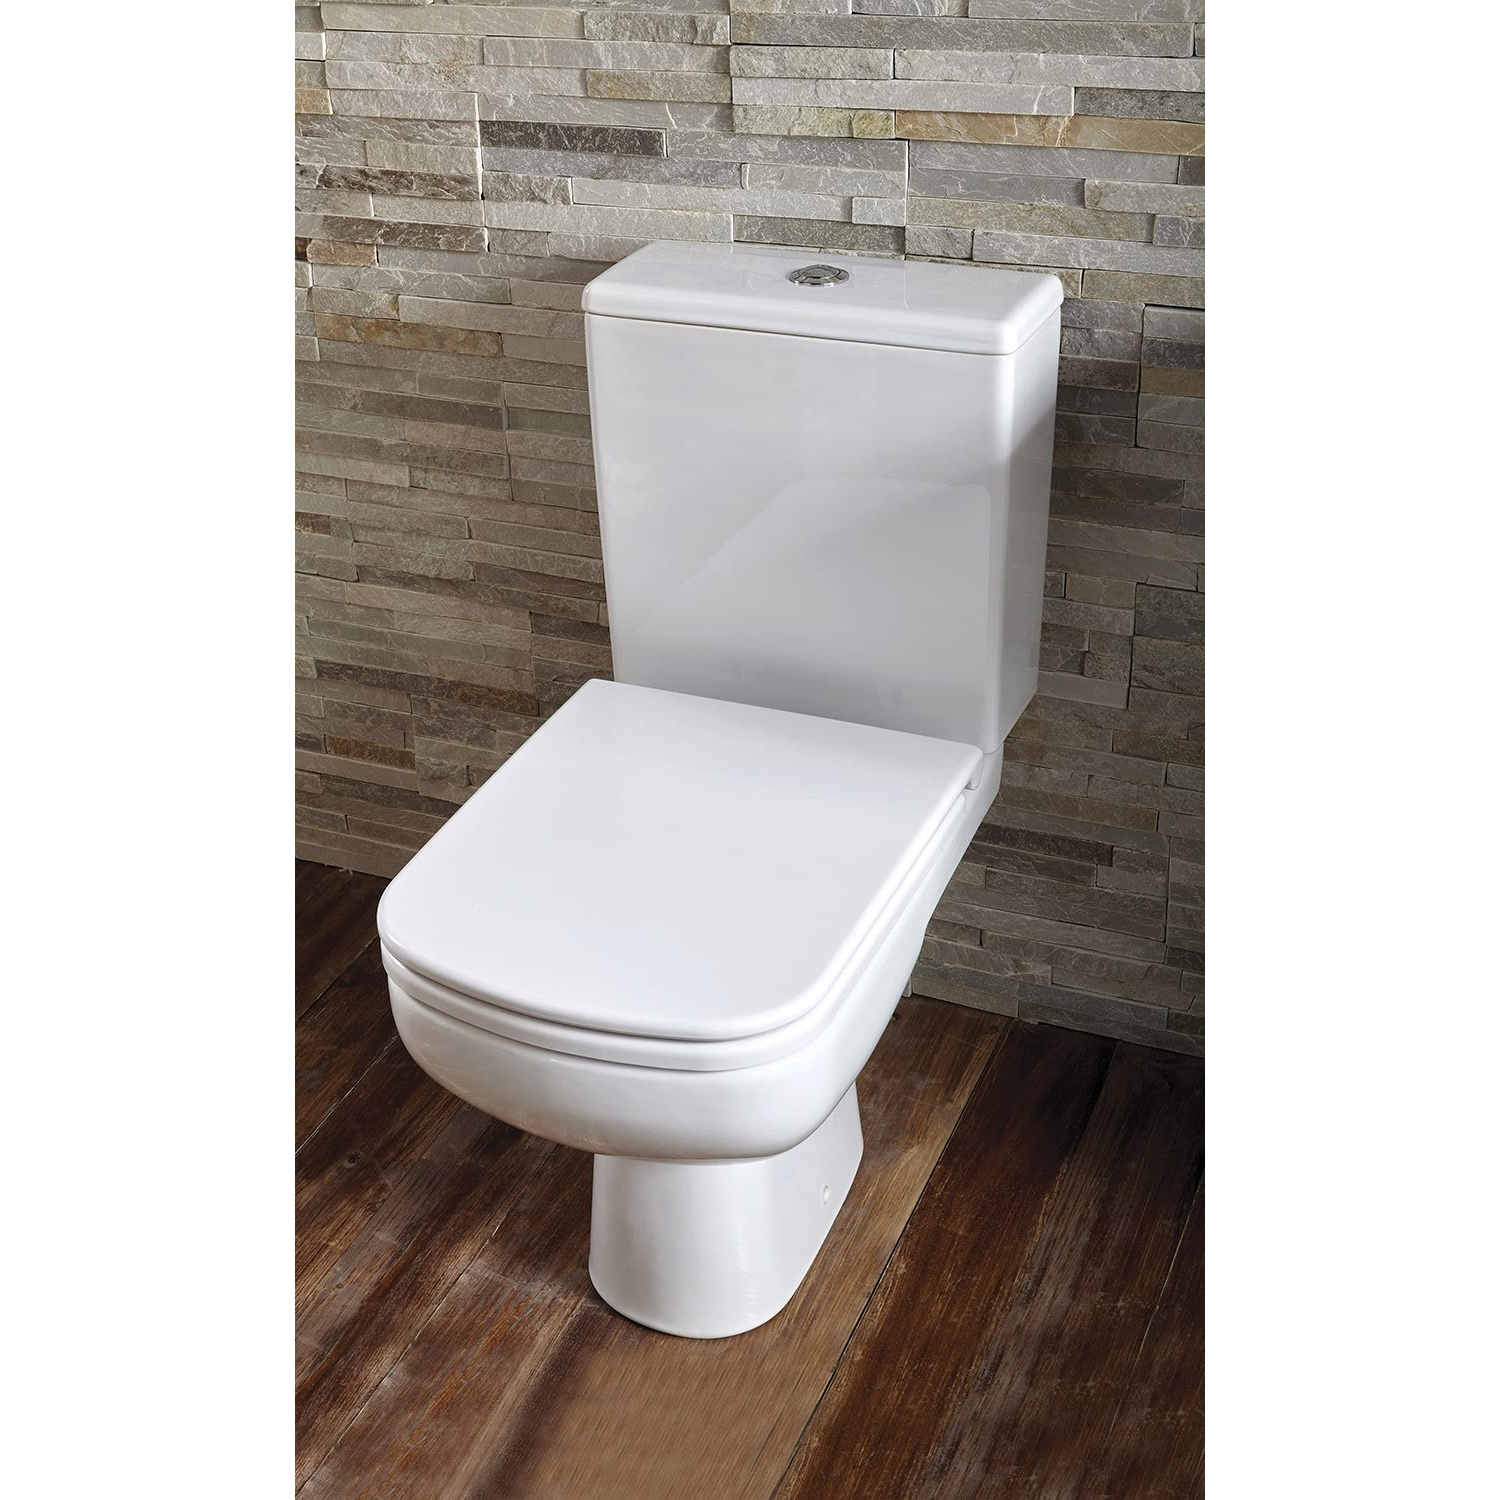 Verona Ballini Close Coupled Toilet WC Push Button Cistern - Soft Close Seat